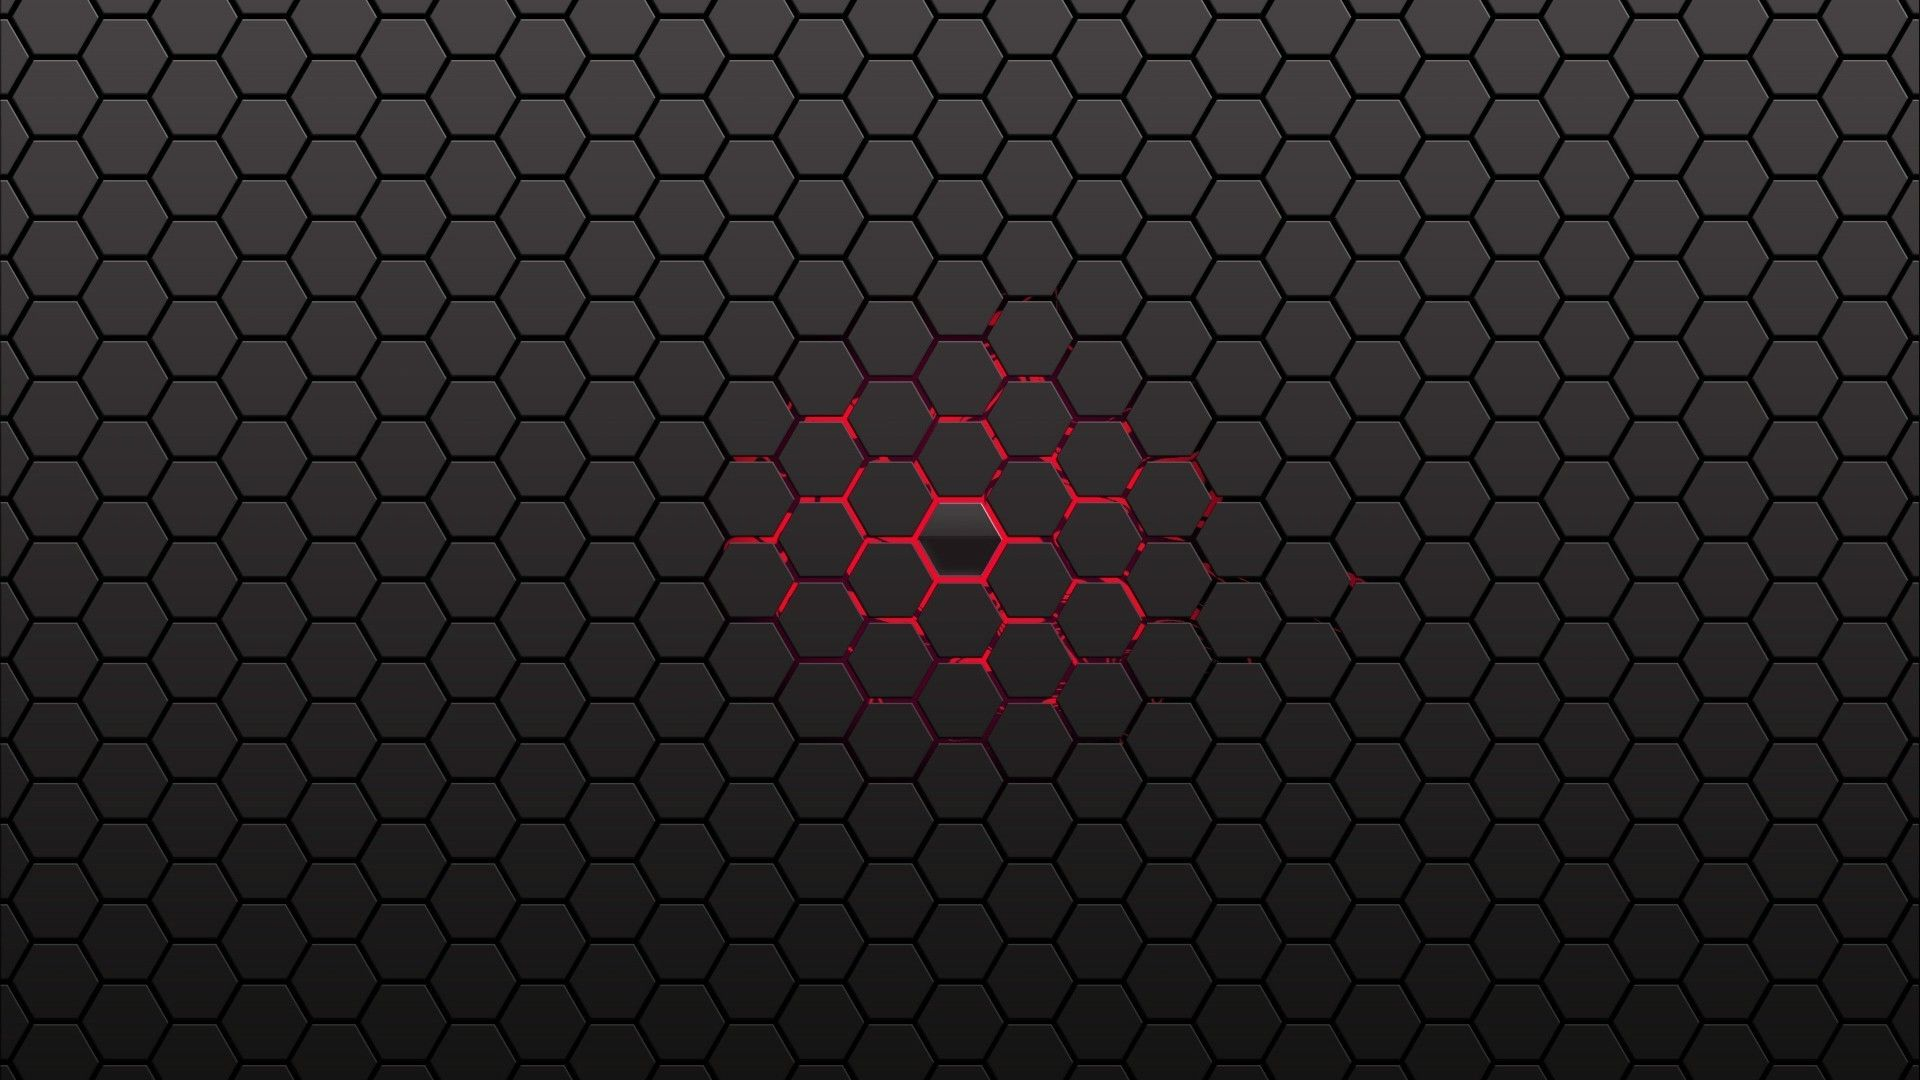 Honeycomb wallpapers background images page 6 - Blue Honeycomb Pattern Wallpaper Wallpaper Wide Hd